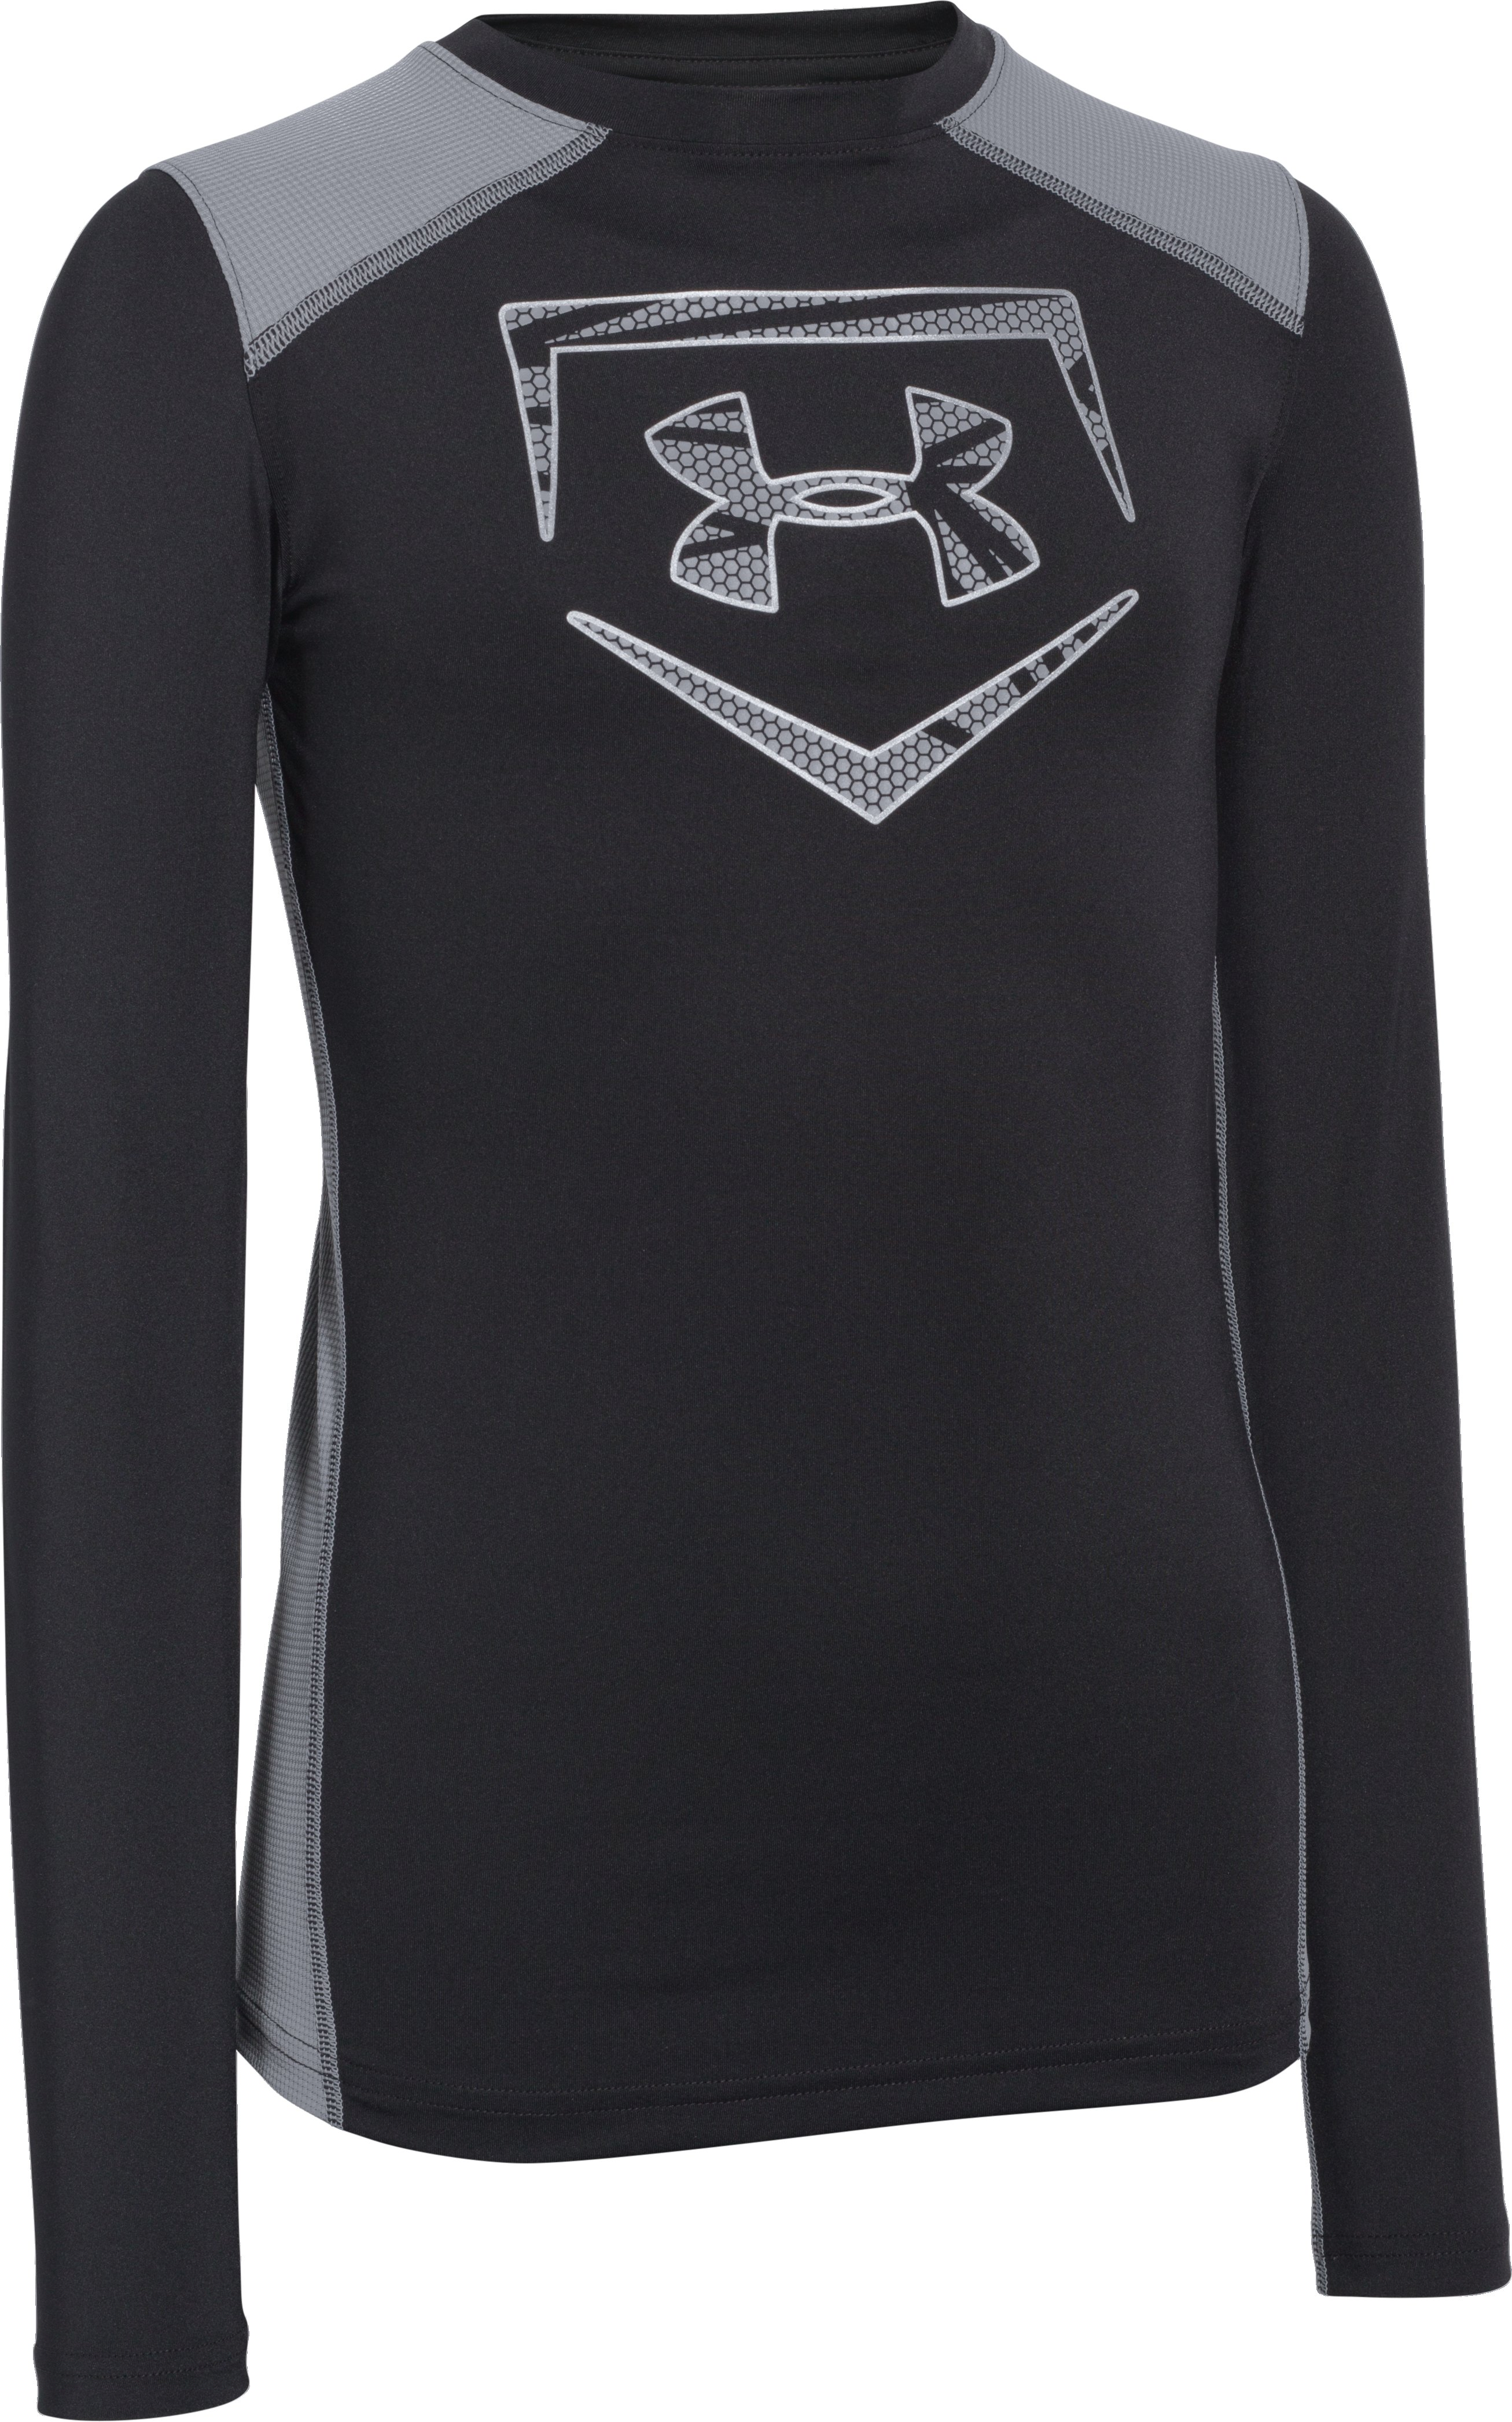 Boys' UA Undeniable Long Sleeve Fitted, Black